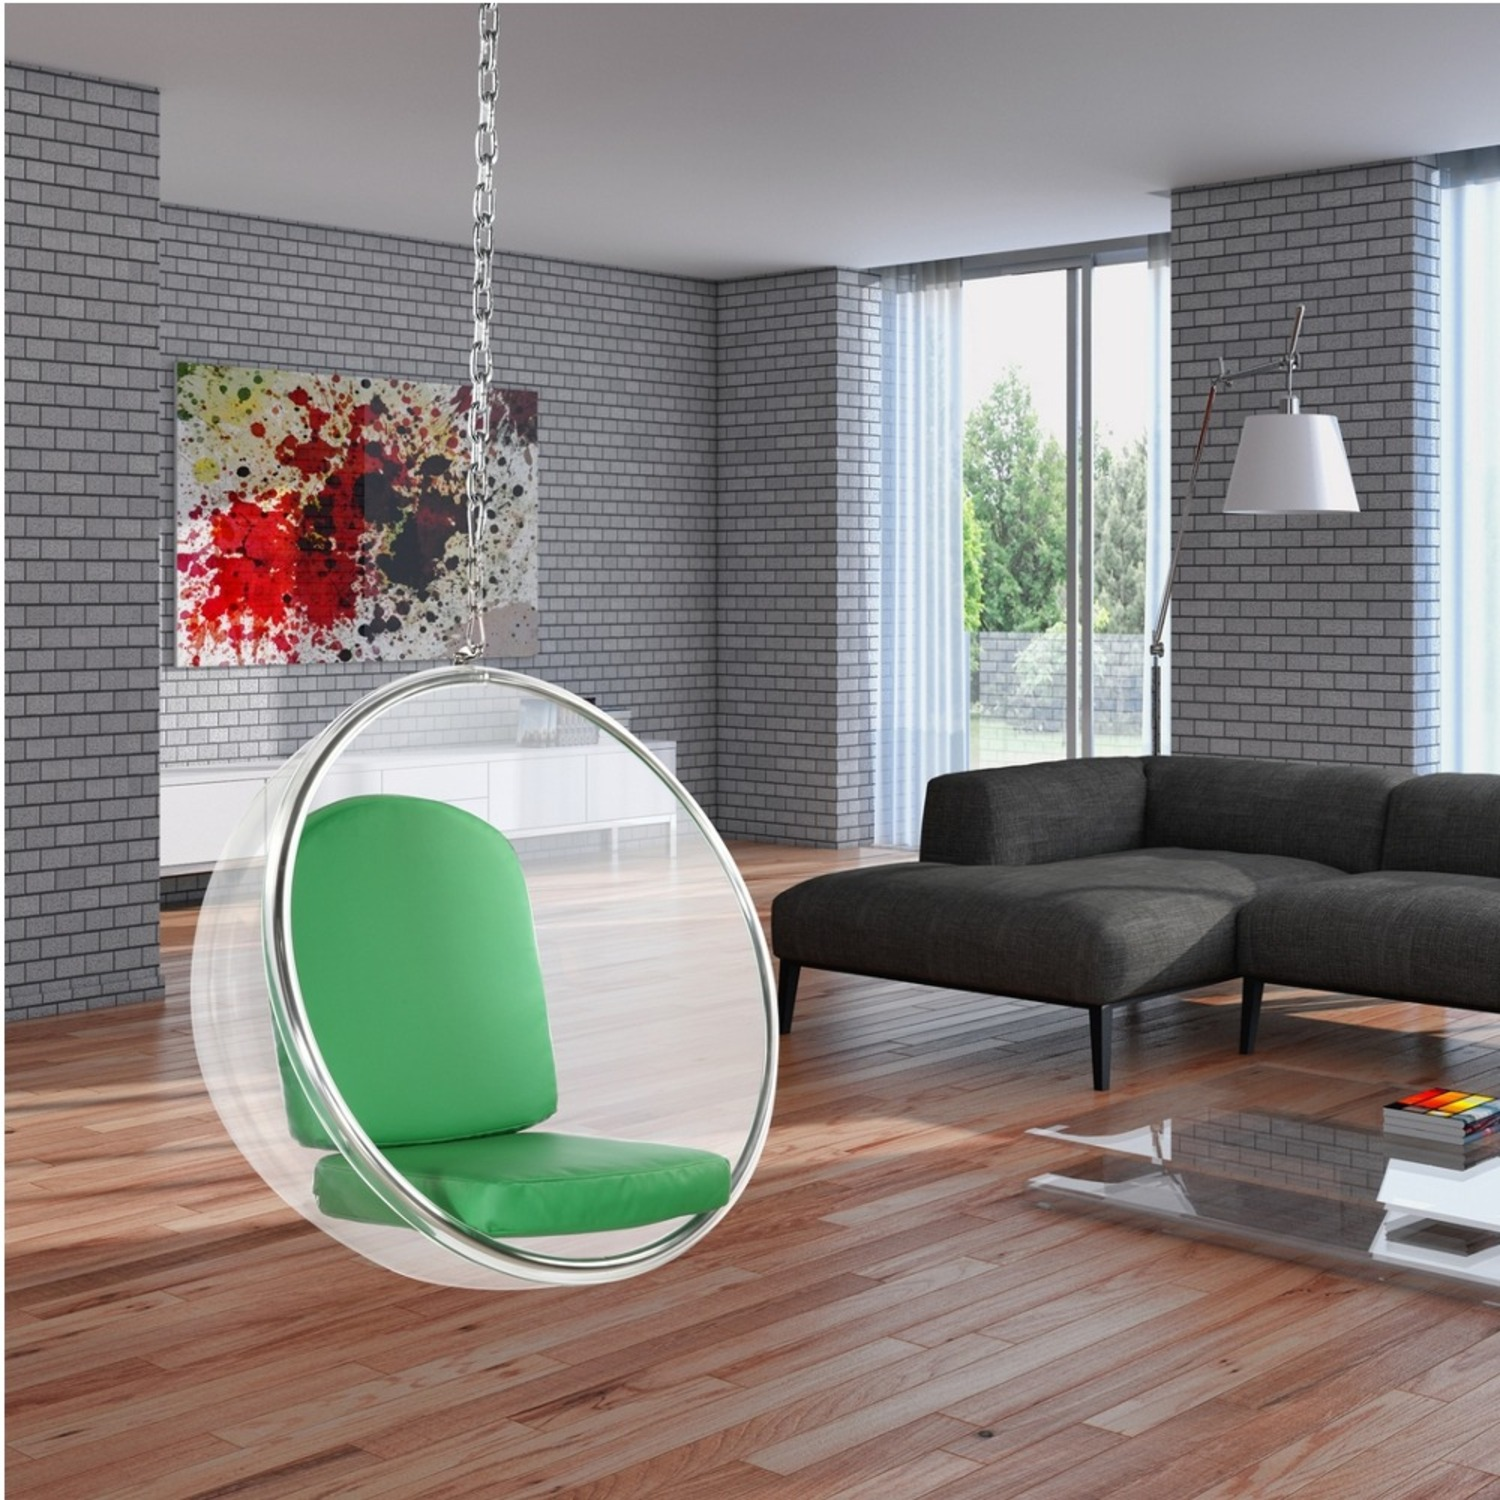 Hanging Chair In Clear Acrylic & Green PU Leather - image-6